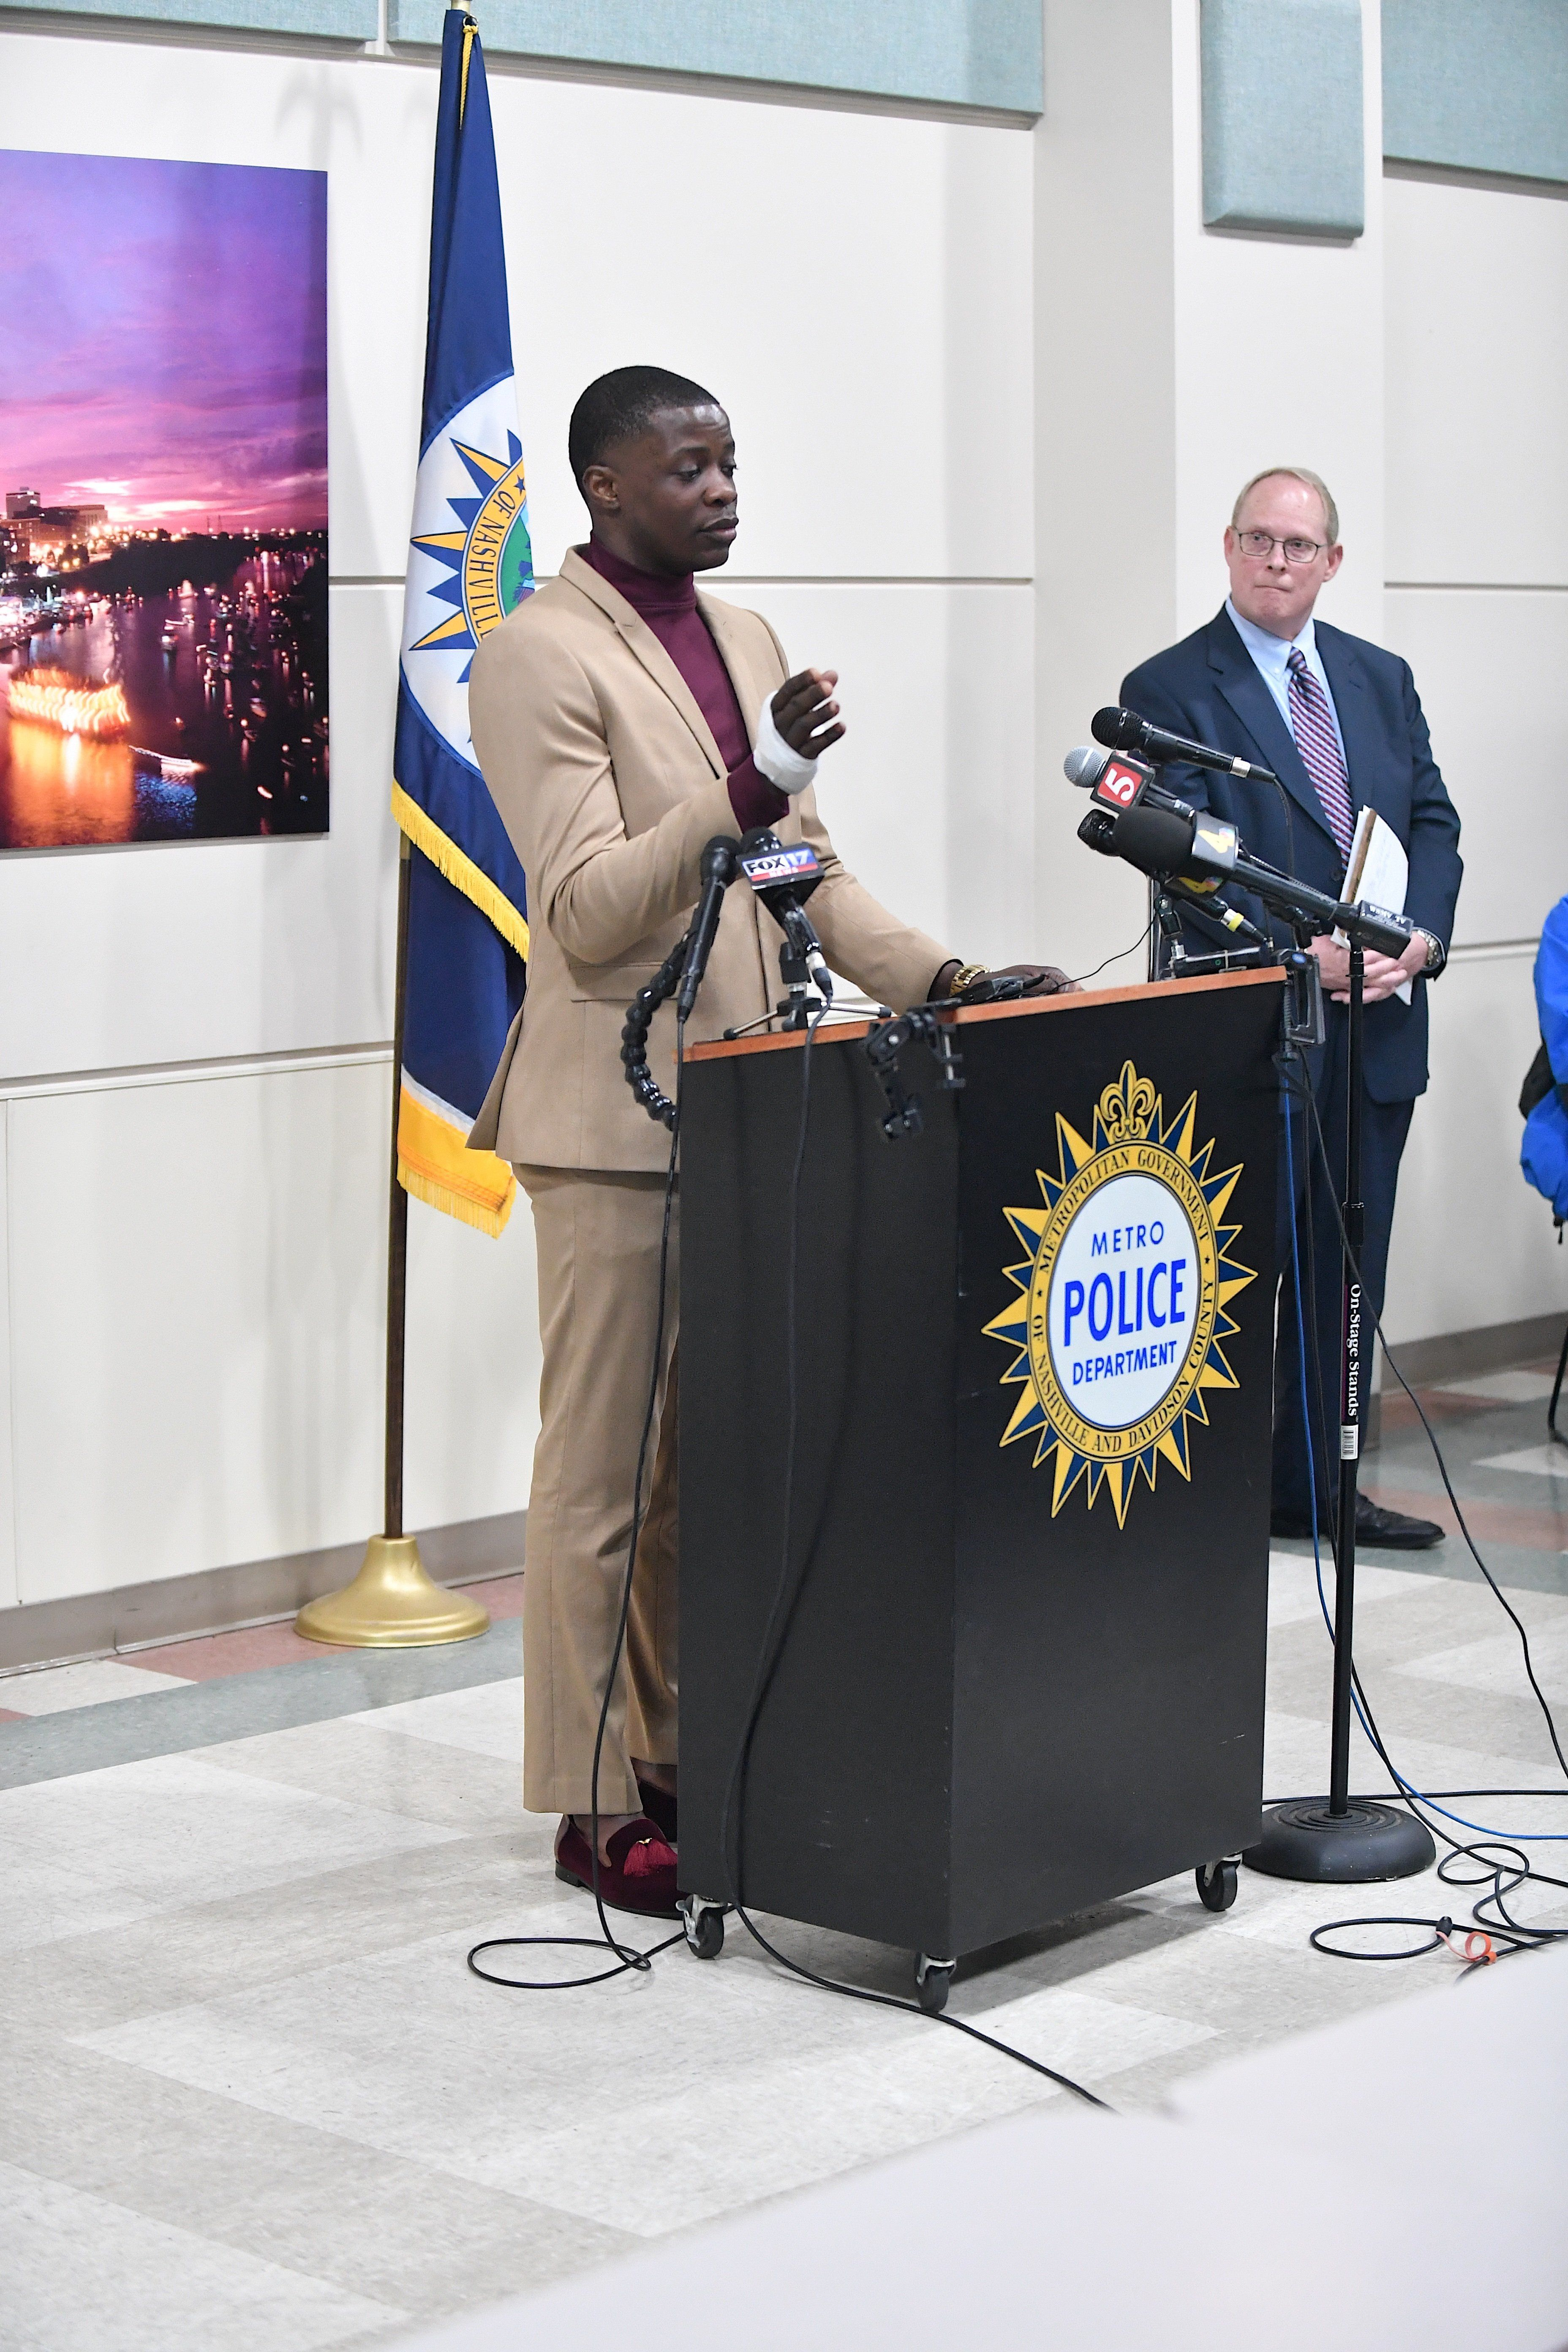 NASHVILLE, TN - APRIL 22:  Waffle House patron James Shaw, Jr. discusses the shooting at a Waffle House where a gunman opened fire killing four and injuring two at a press conference on April 22, 2018 in Nashville, Tennessee. . Shaw, Jr., 29,  took action disarming the gunman and ultimately forcing him out of the Waffle House restaurant. Travis Reinking, 29, of Morton, IL, is person of interest in the shooting and is suspected to have left the scene naked. (Photo by Jason Davis/Getty Images)